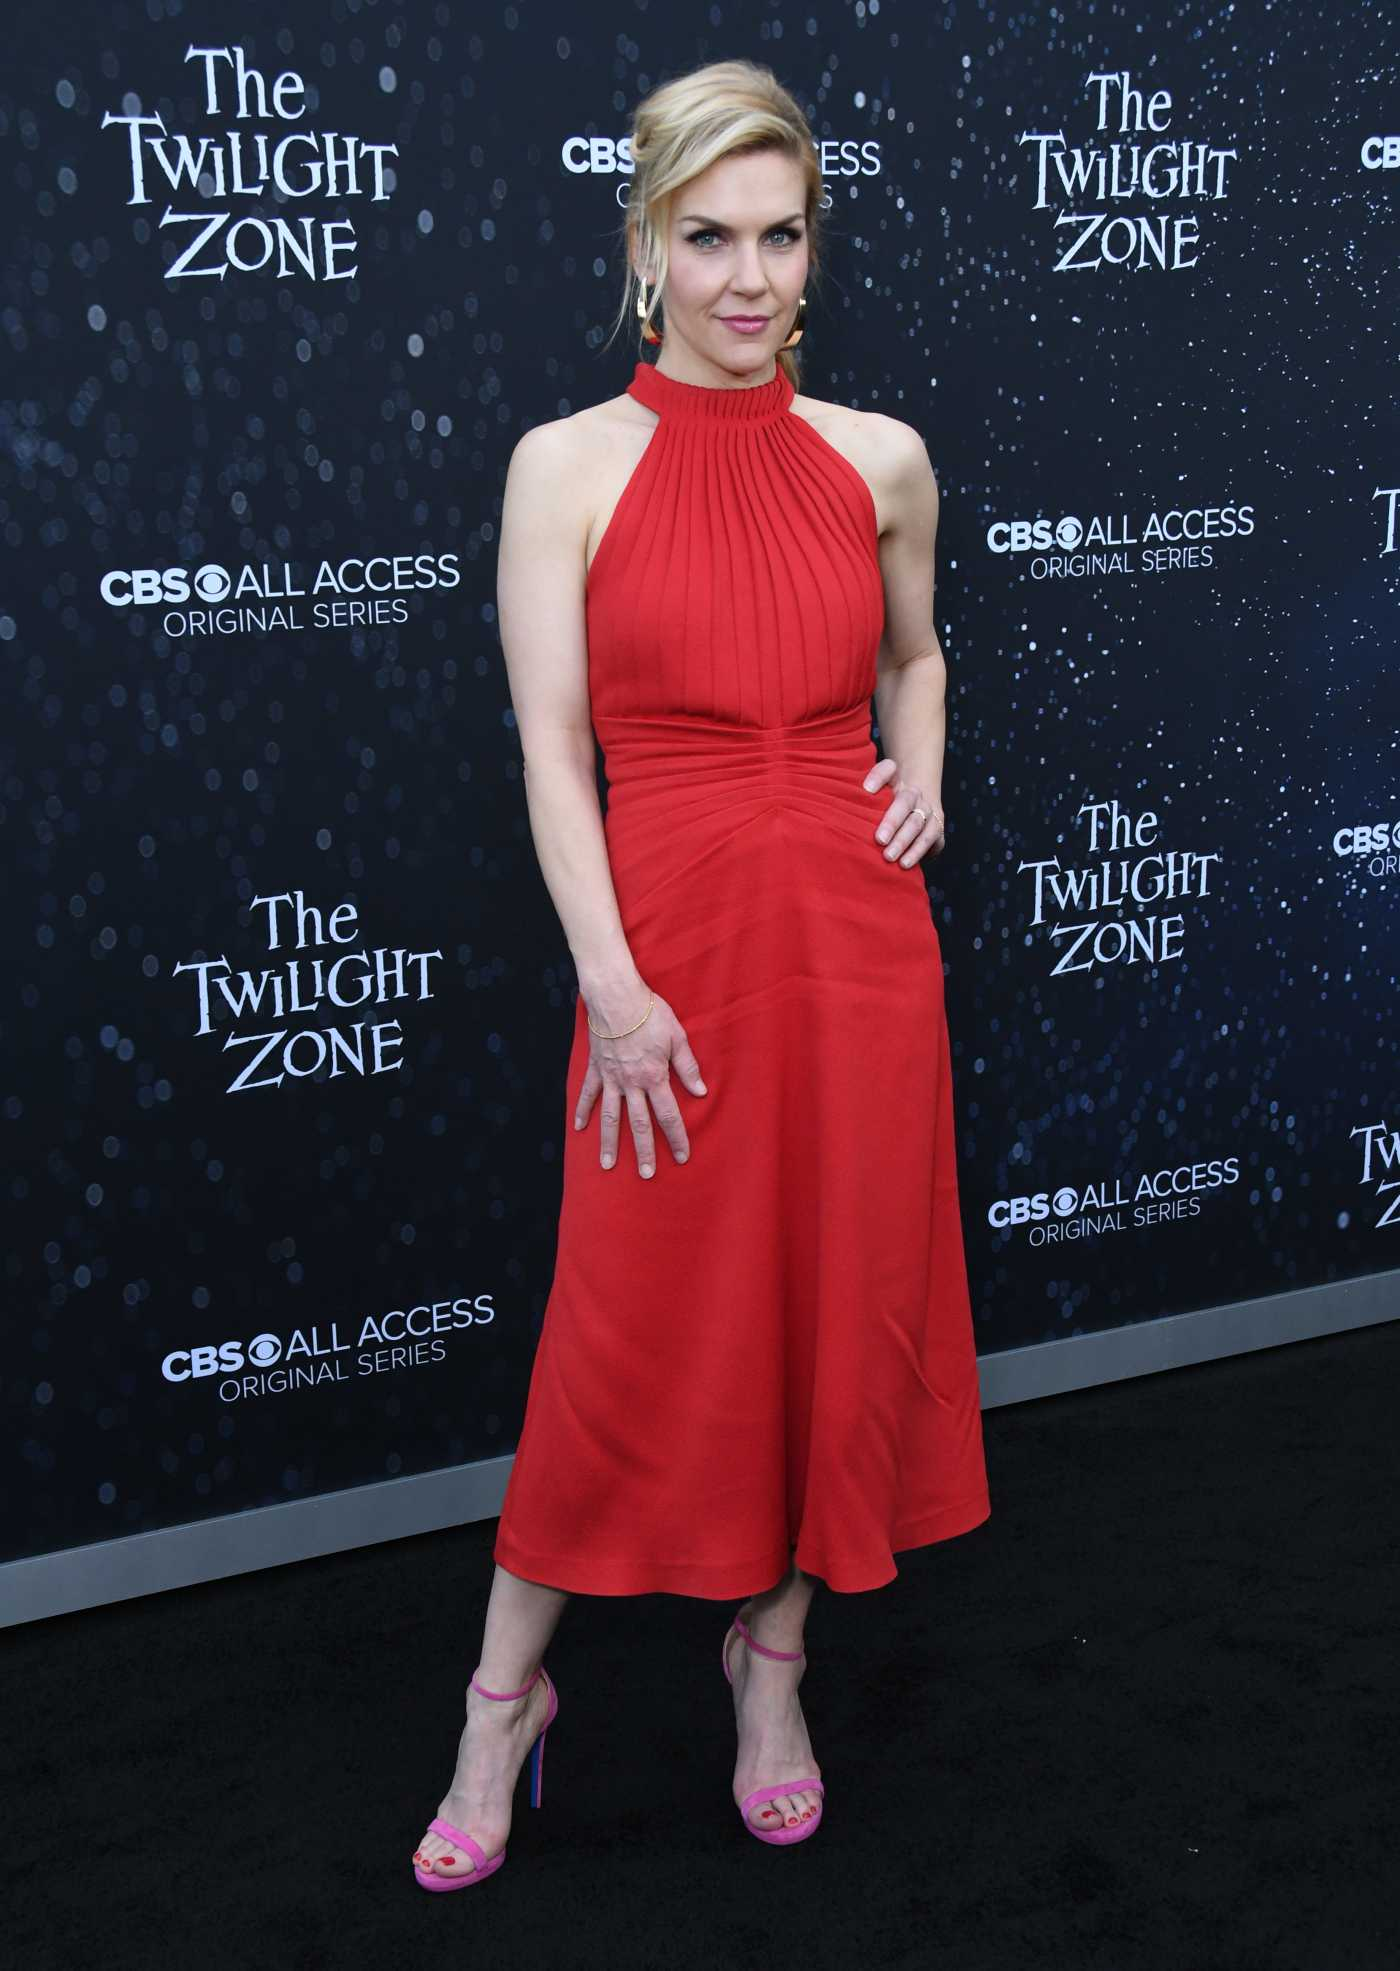 Rhea Seehorn Attends The Twilight Zone TV Show Premiere in LA 03/26/2019